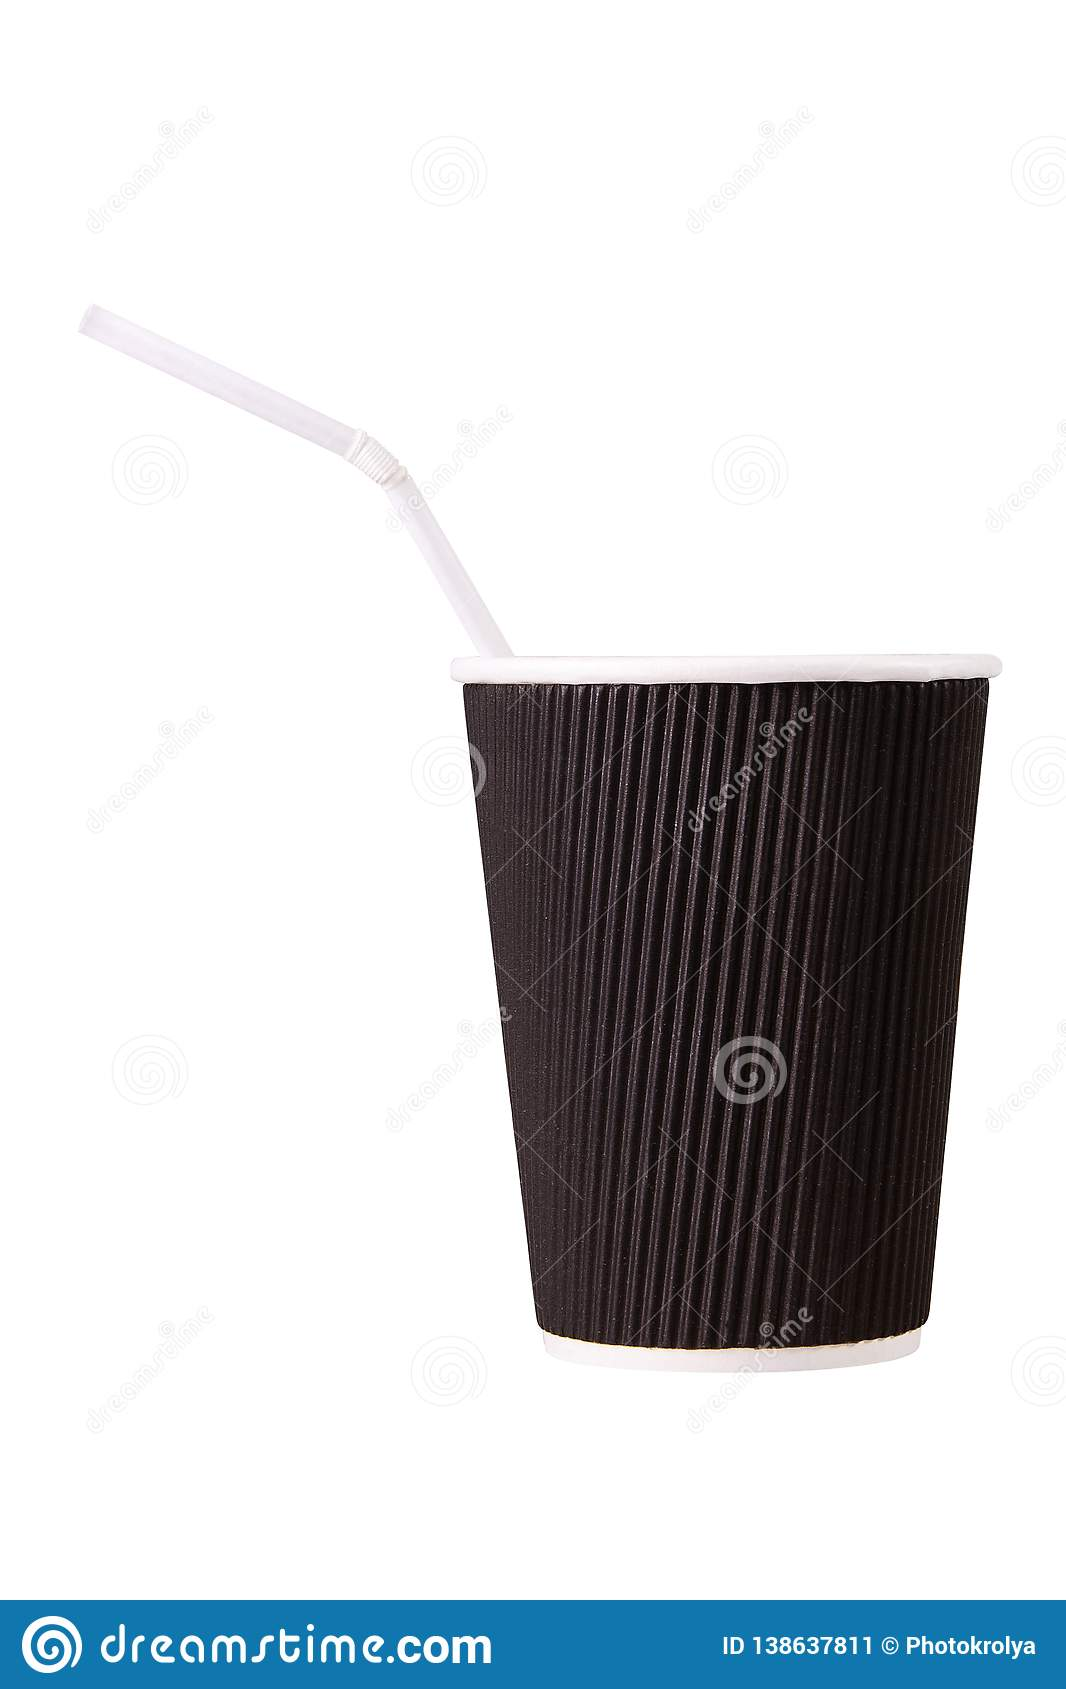 Brown paper coffee cup with straw isolated on white background.